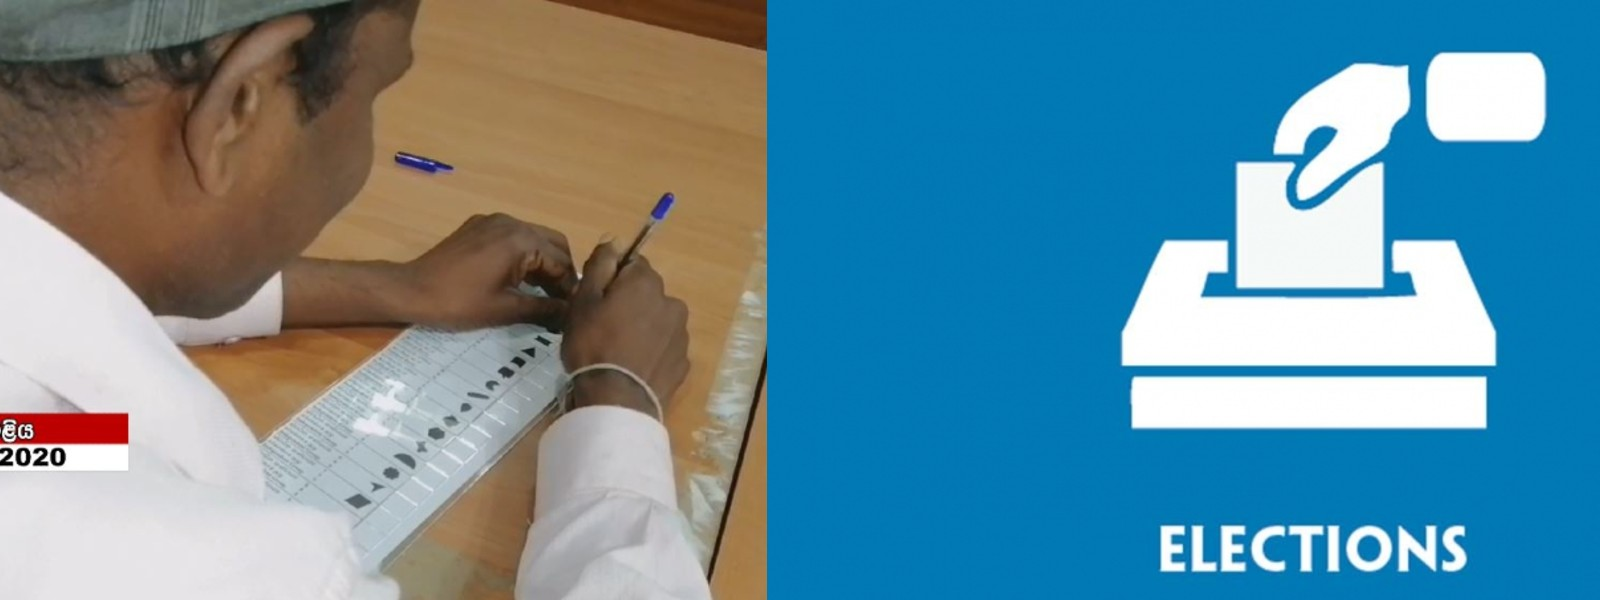 New voting system for the visually impaired; Pilot project on Election Day